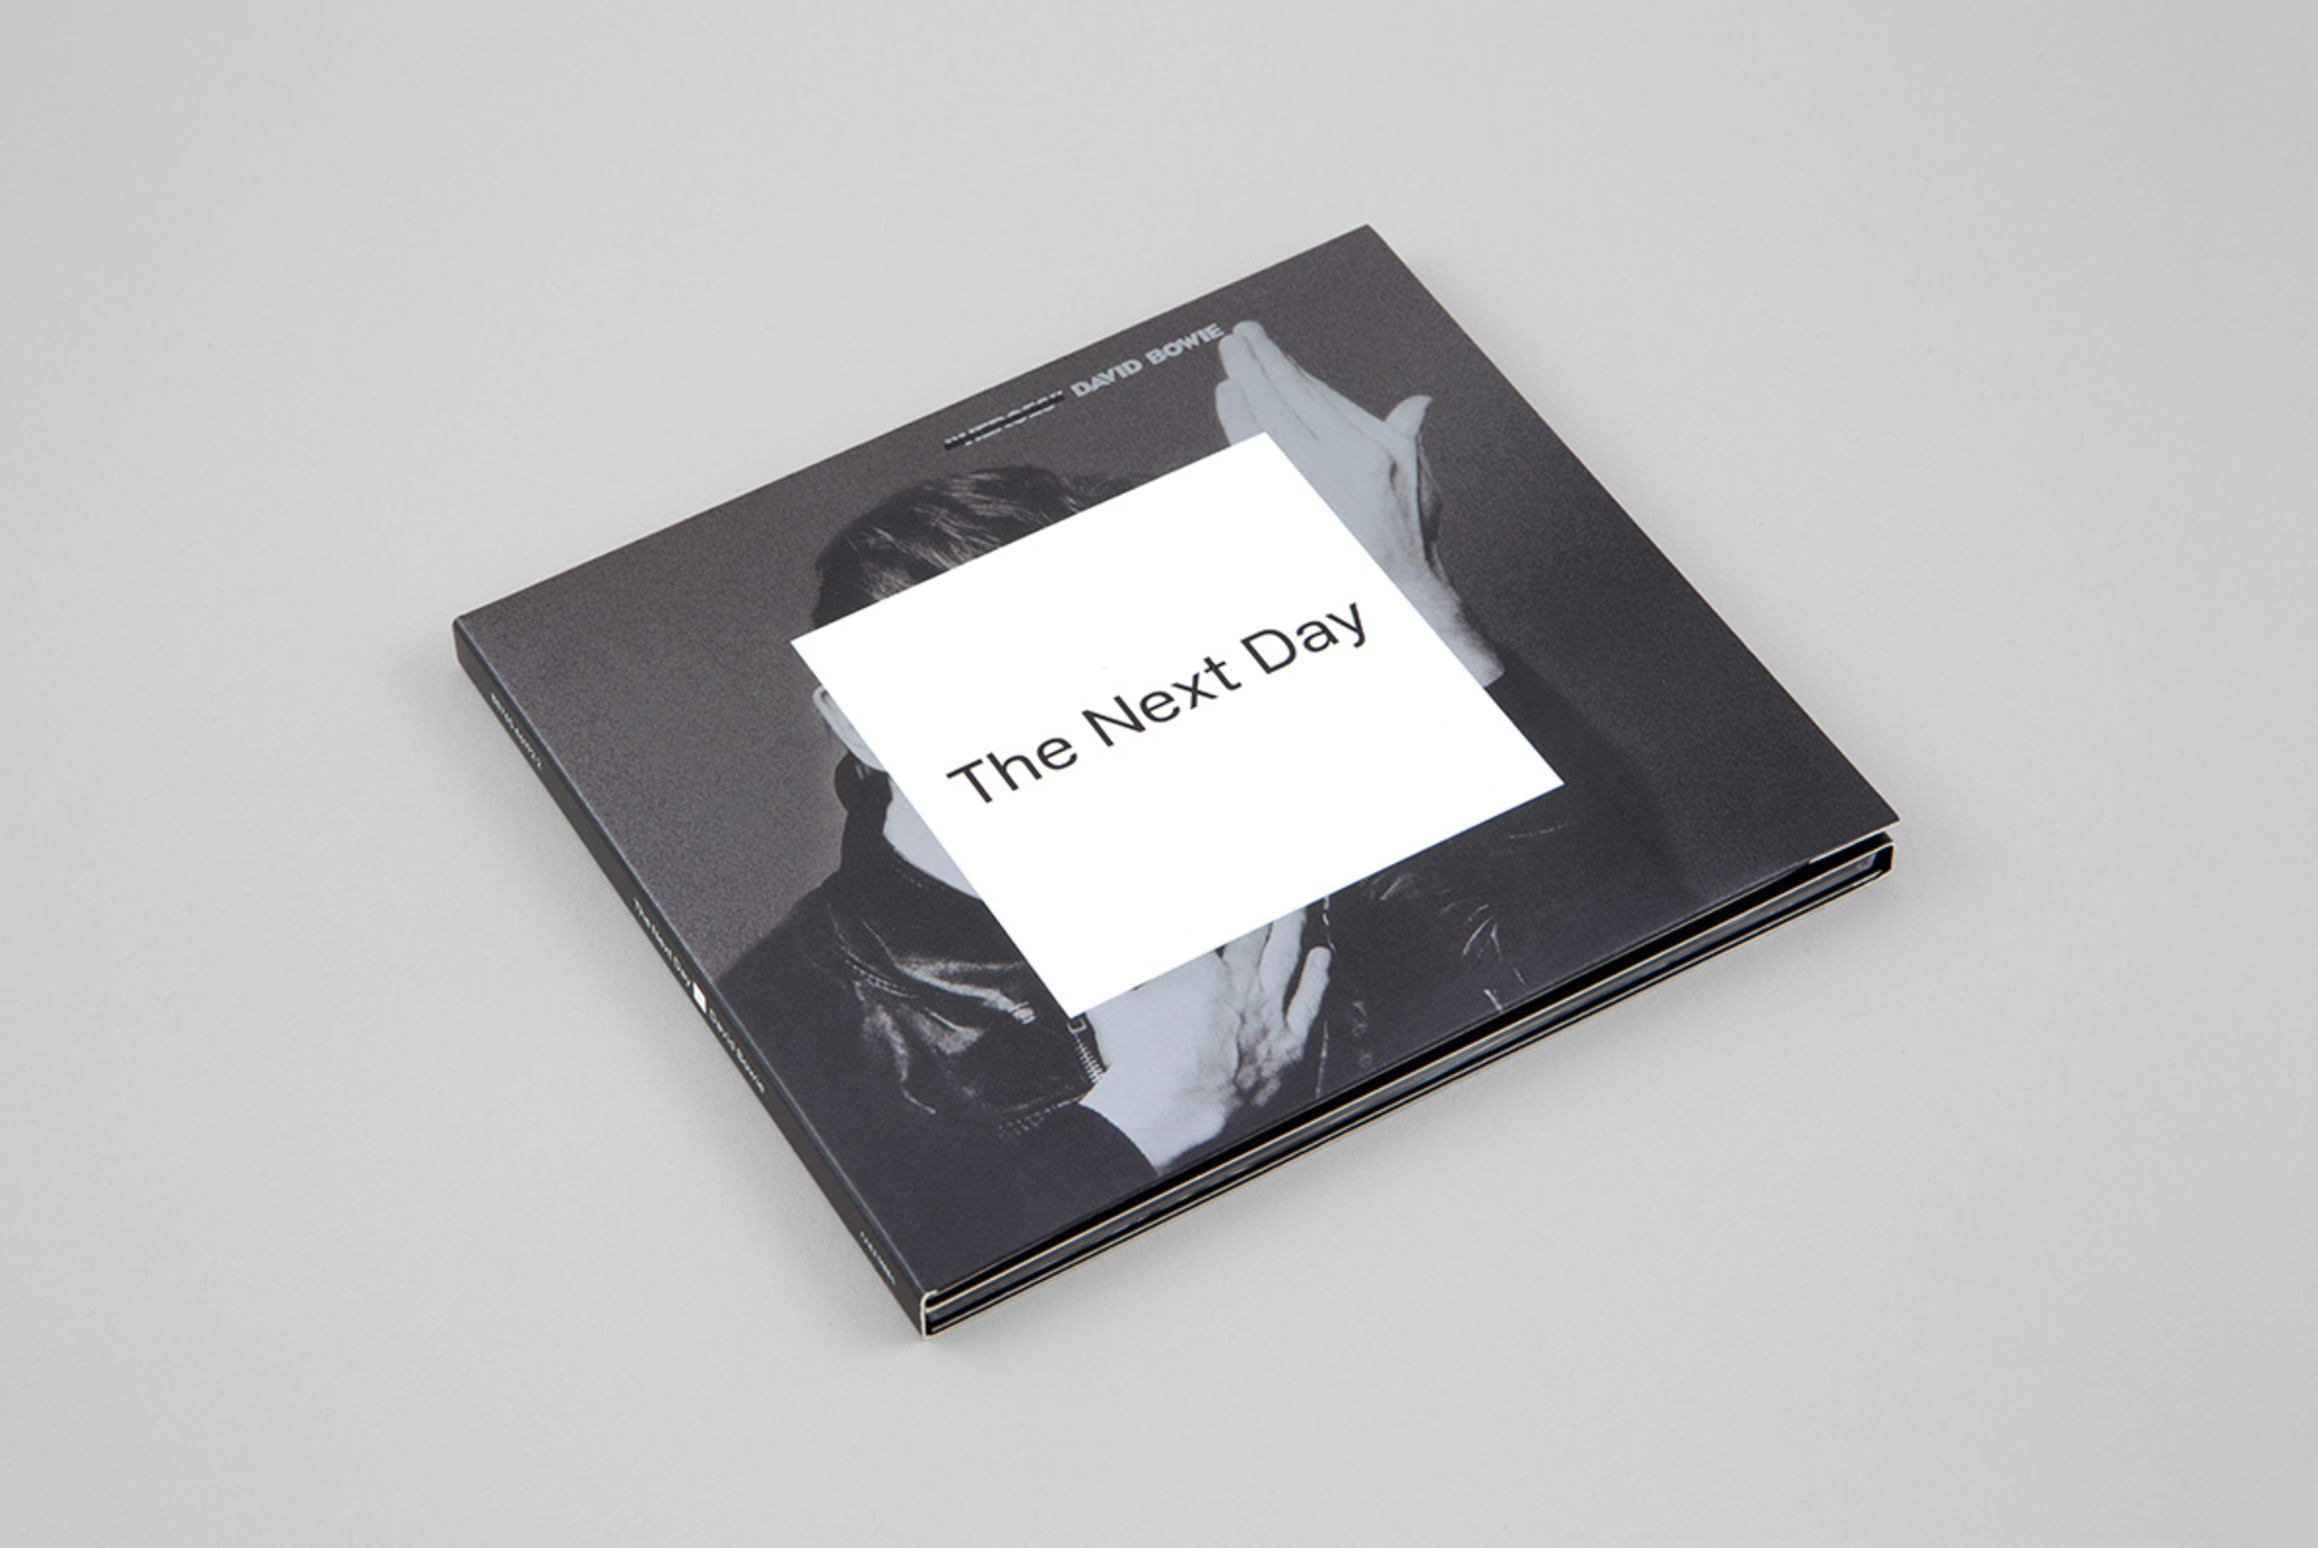 _The Next Day,_ David Bowie's first album after a 10-year recording hiatus, was designed by Barnbrook in complete secrecy, making headlines upon release. (Image source: [barnbrook.net](http://www.barnbrook.net/work/david-bowie-the-next-day-2/))